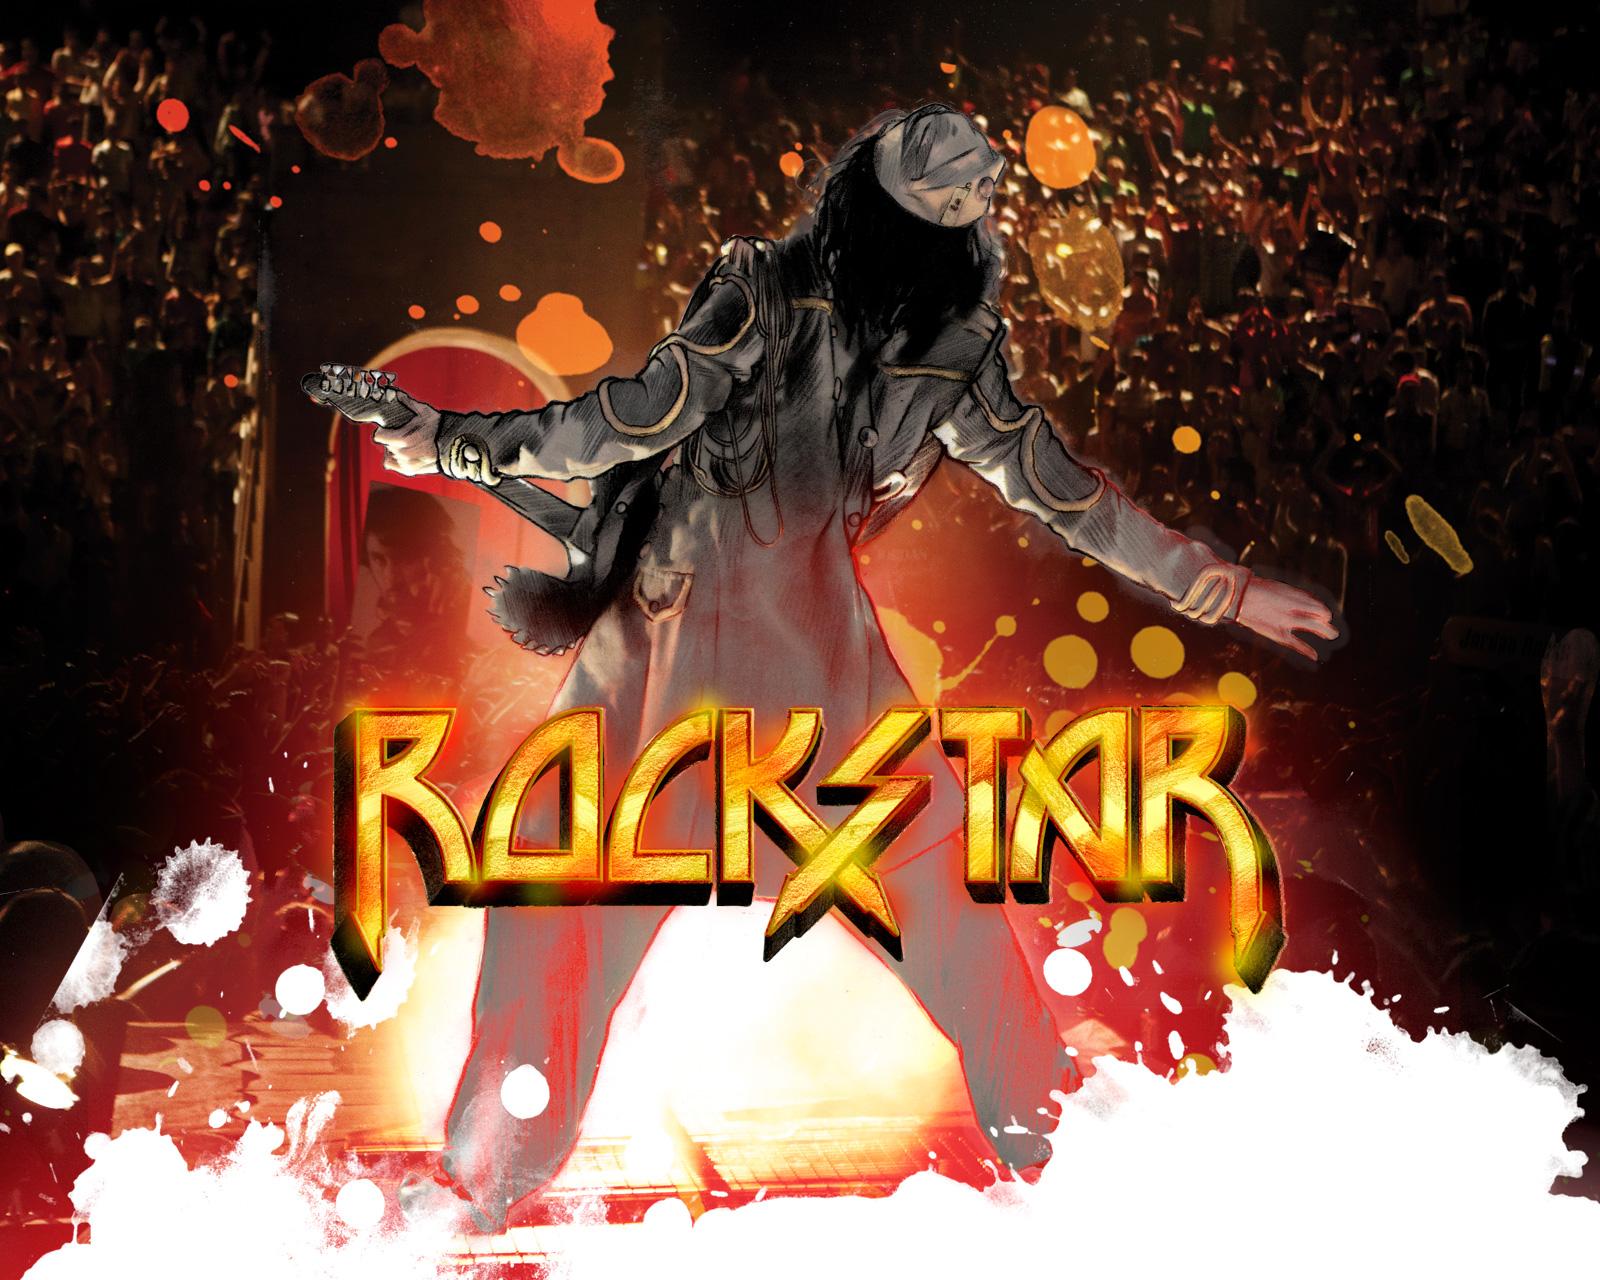 http://3.bp.blogspot.com/-Q6fRTiJIHzY/TmeZH7-epqI/AAAAAAAAKm4/GmVvWx_RpaI/s1600/Rockstar-Hindi-Movie-Wallpapers.jpg